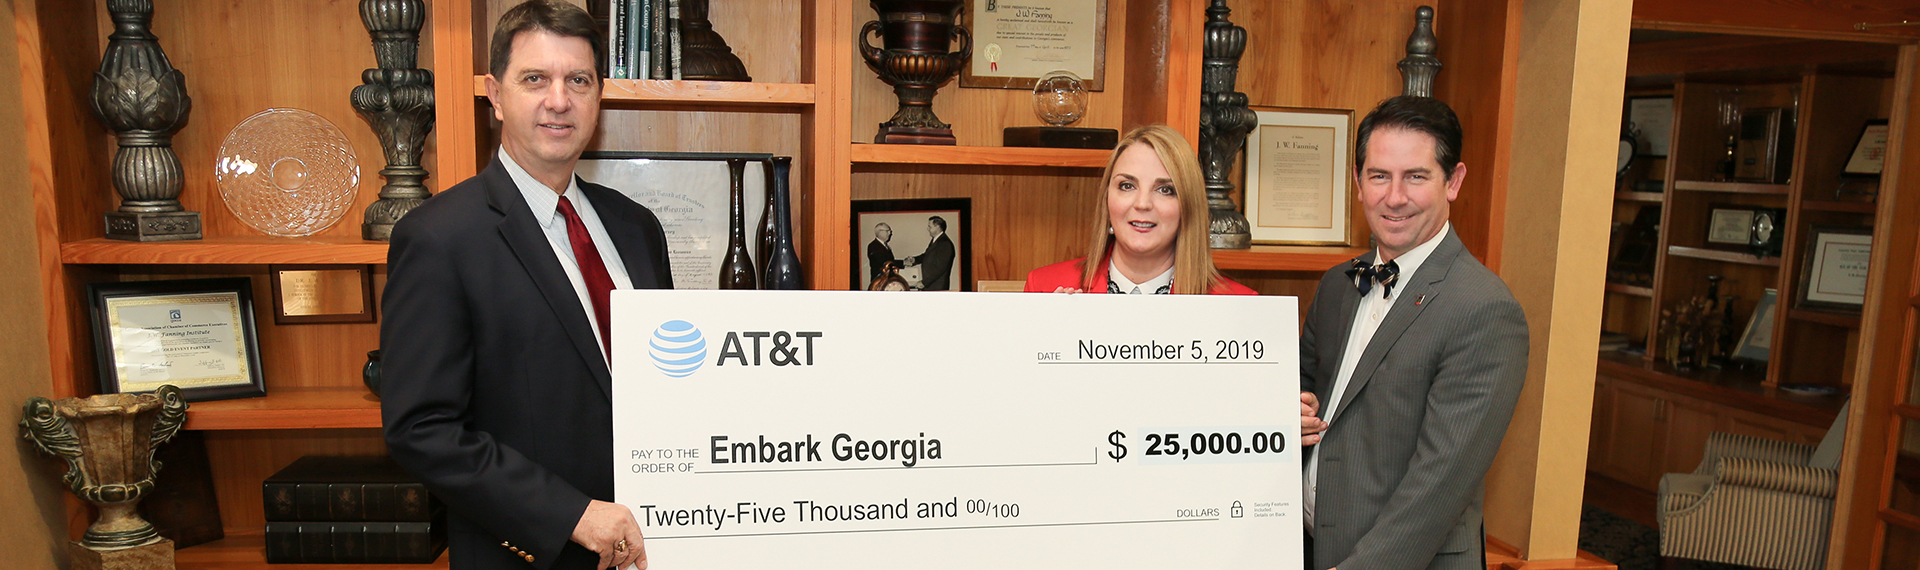 AT&T supports Embark